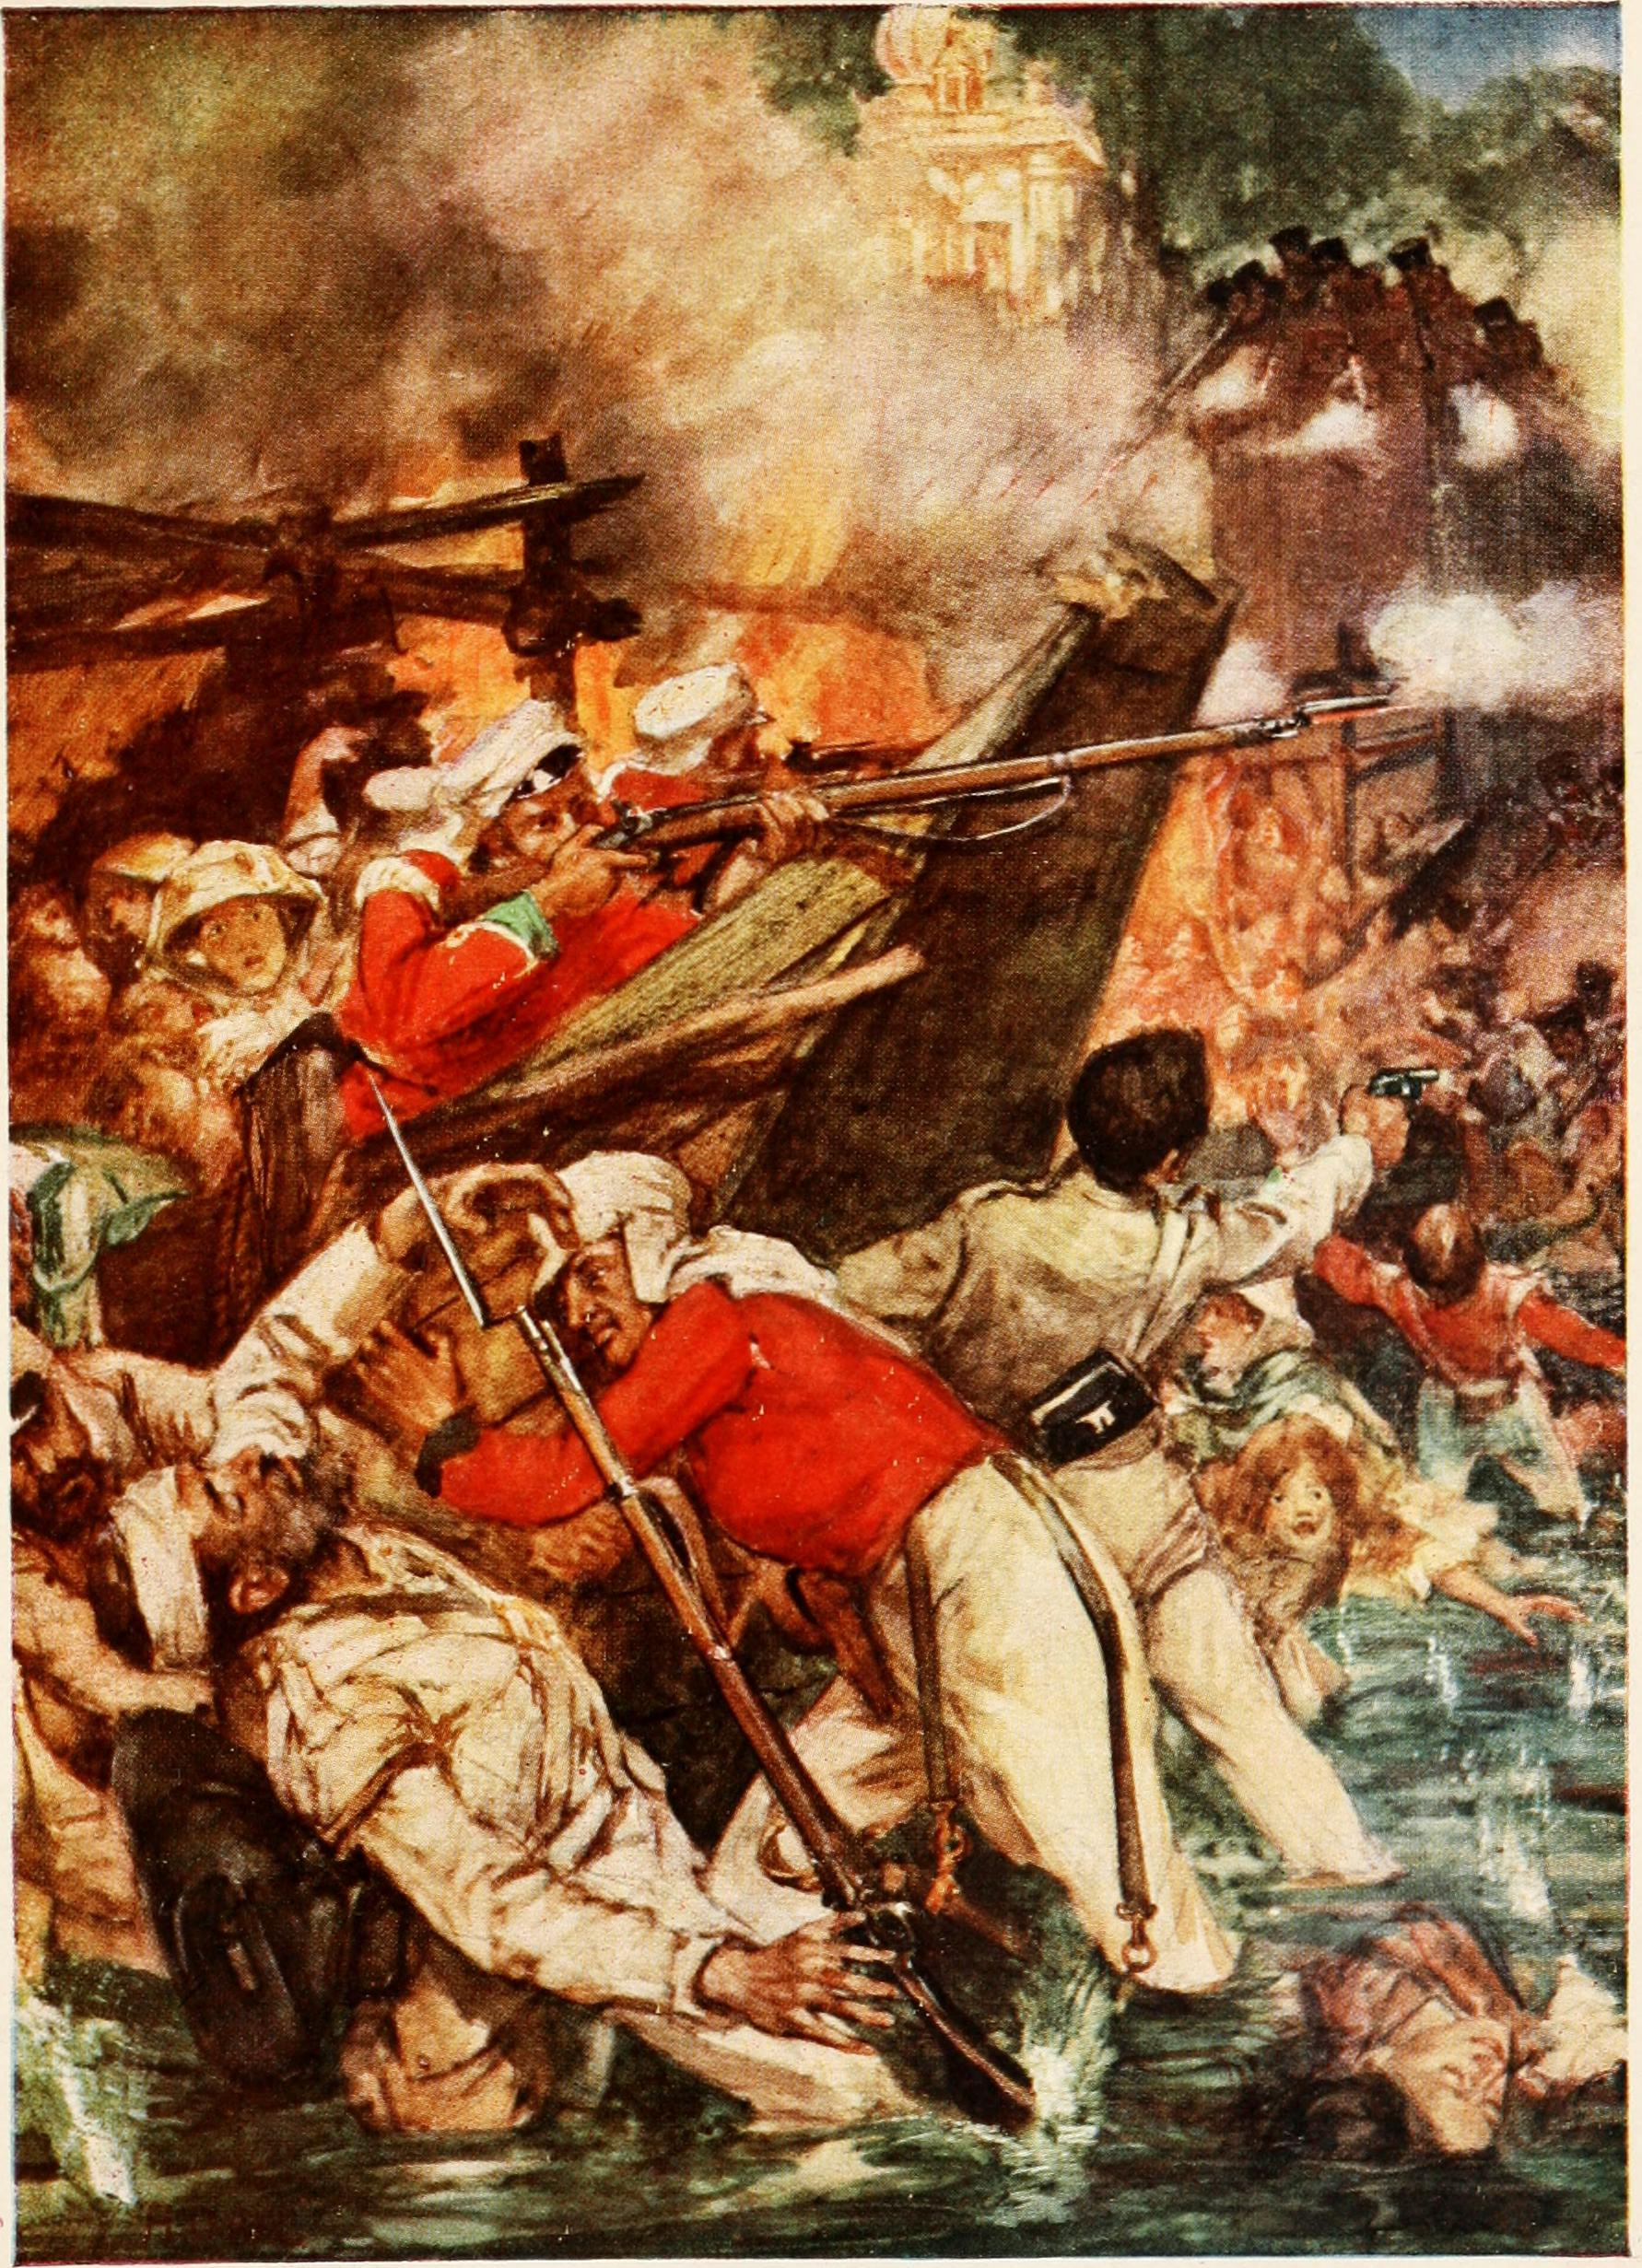 indian rebellion of 1857 Indian rebellion of 1857's wiki: the indian rebellion of 1857 was a major, but ultimately unsuccessful, uprising in india in 1857–58 against the rule of the british east india company, which functioned as a sovereign power on behalf of the british crown.